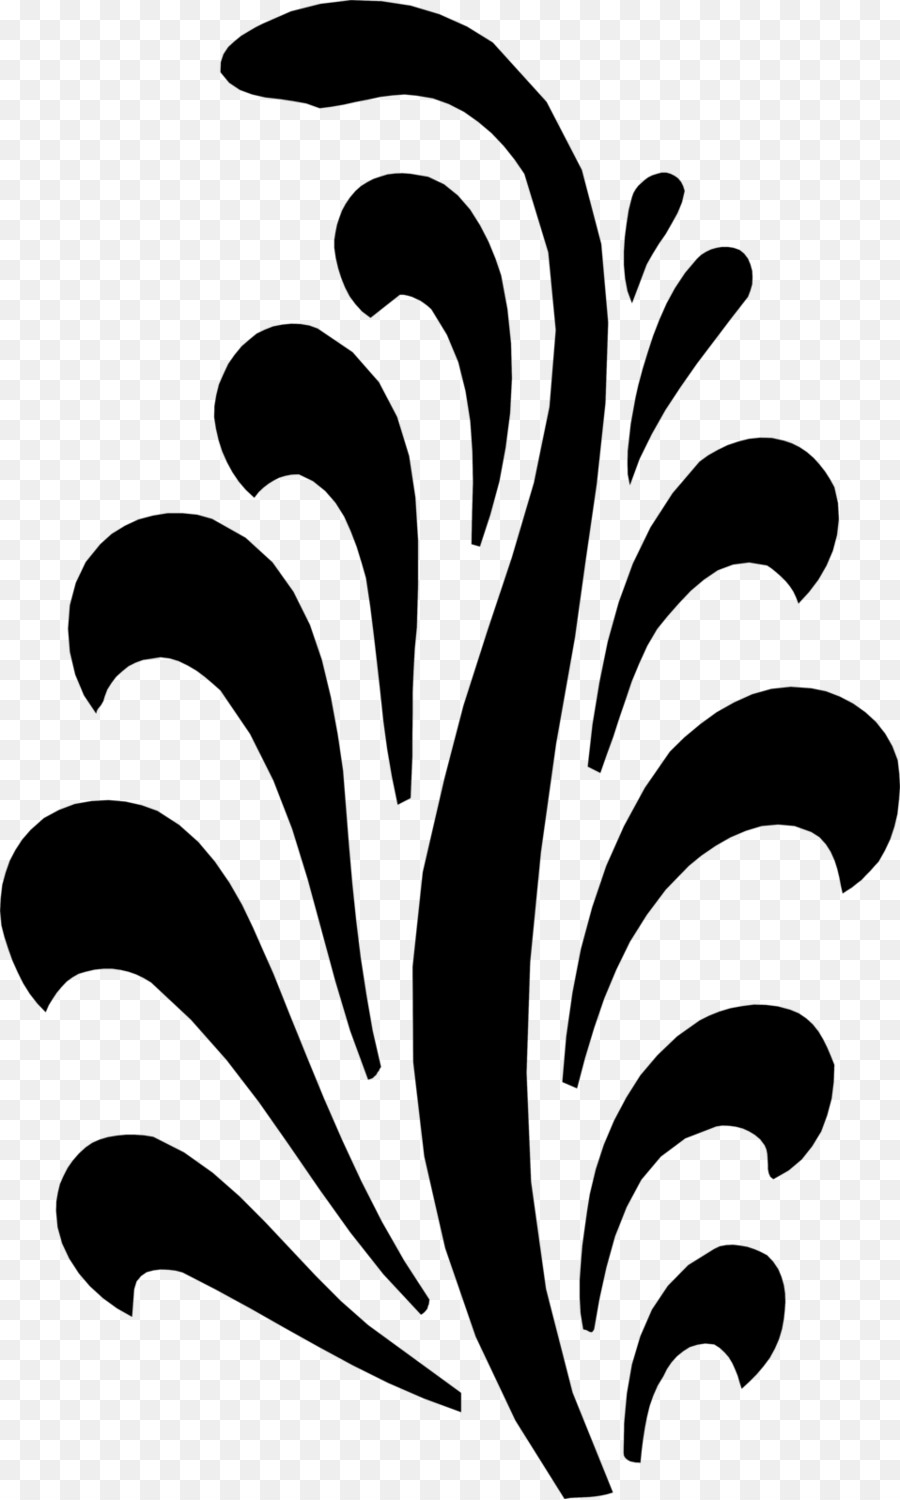 Stencil black and white art plant flower png